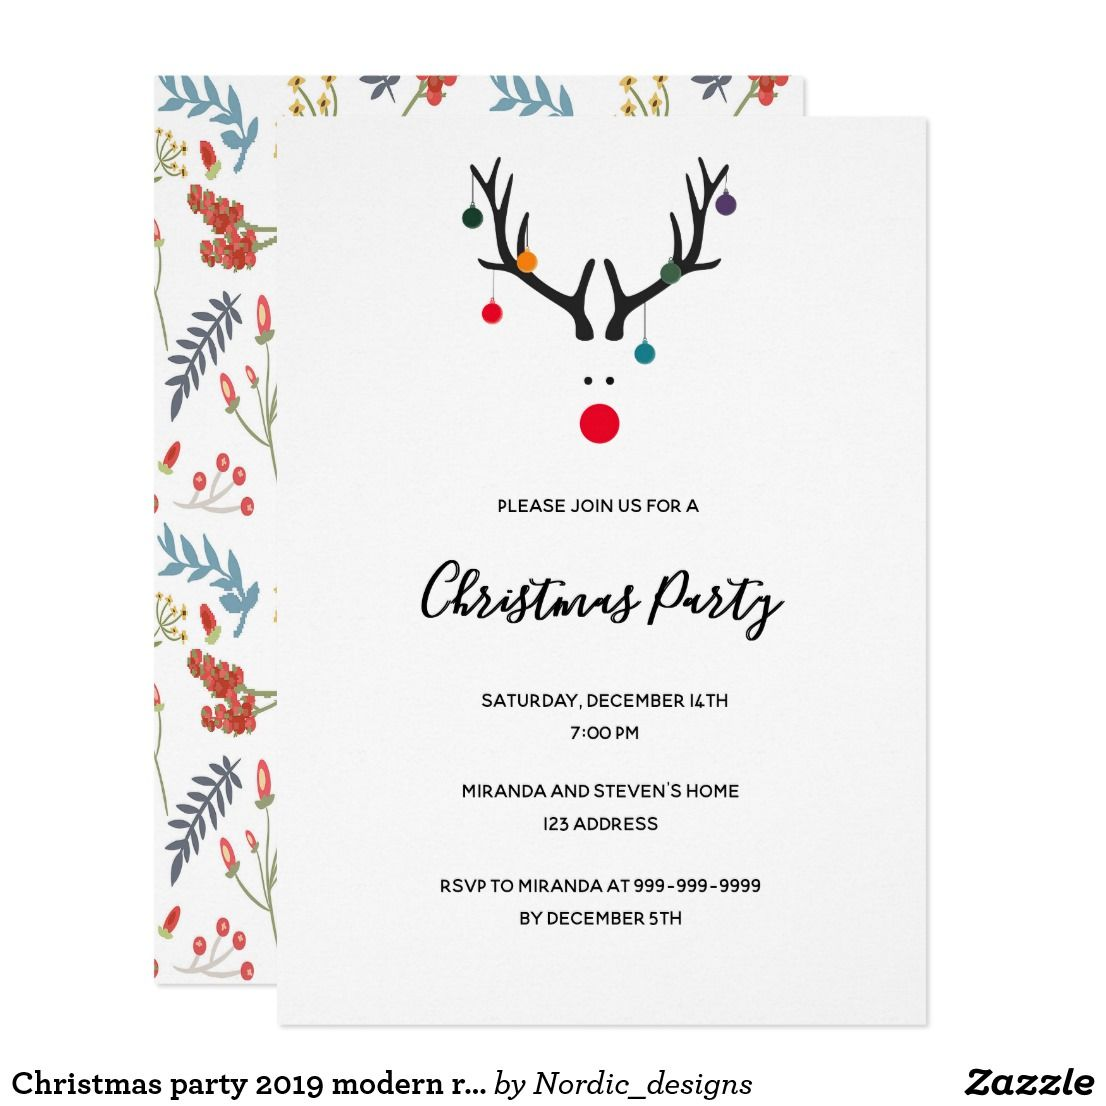 Christmas party 2020 modern reindeer white red invitation